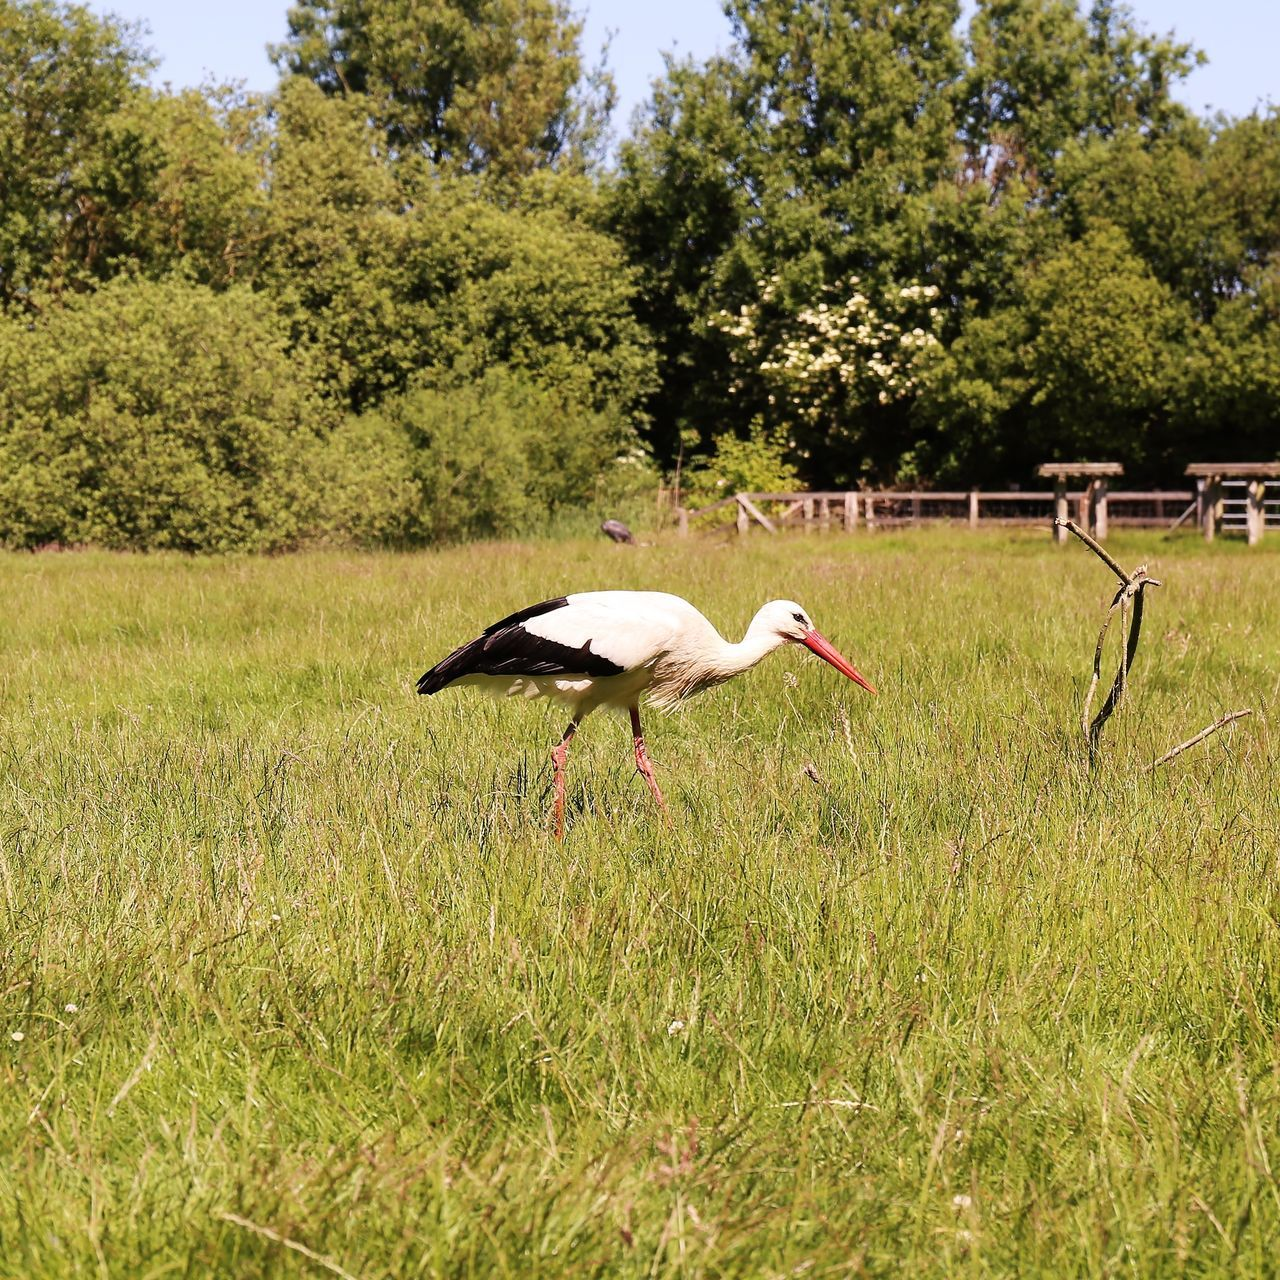 White stork Ciconiidae White Stork Animal Themes Animal Wildlife Animals In The Wild Beauty In Nature Bird Ciconia Ciconia Day Grass Green Color Growth Klapperstorch Nature No People One Animal Outdoors Sky Storch Stork Tree Weißstorch White Stork